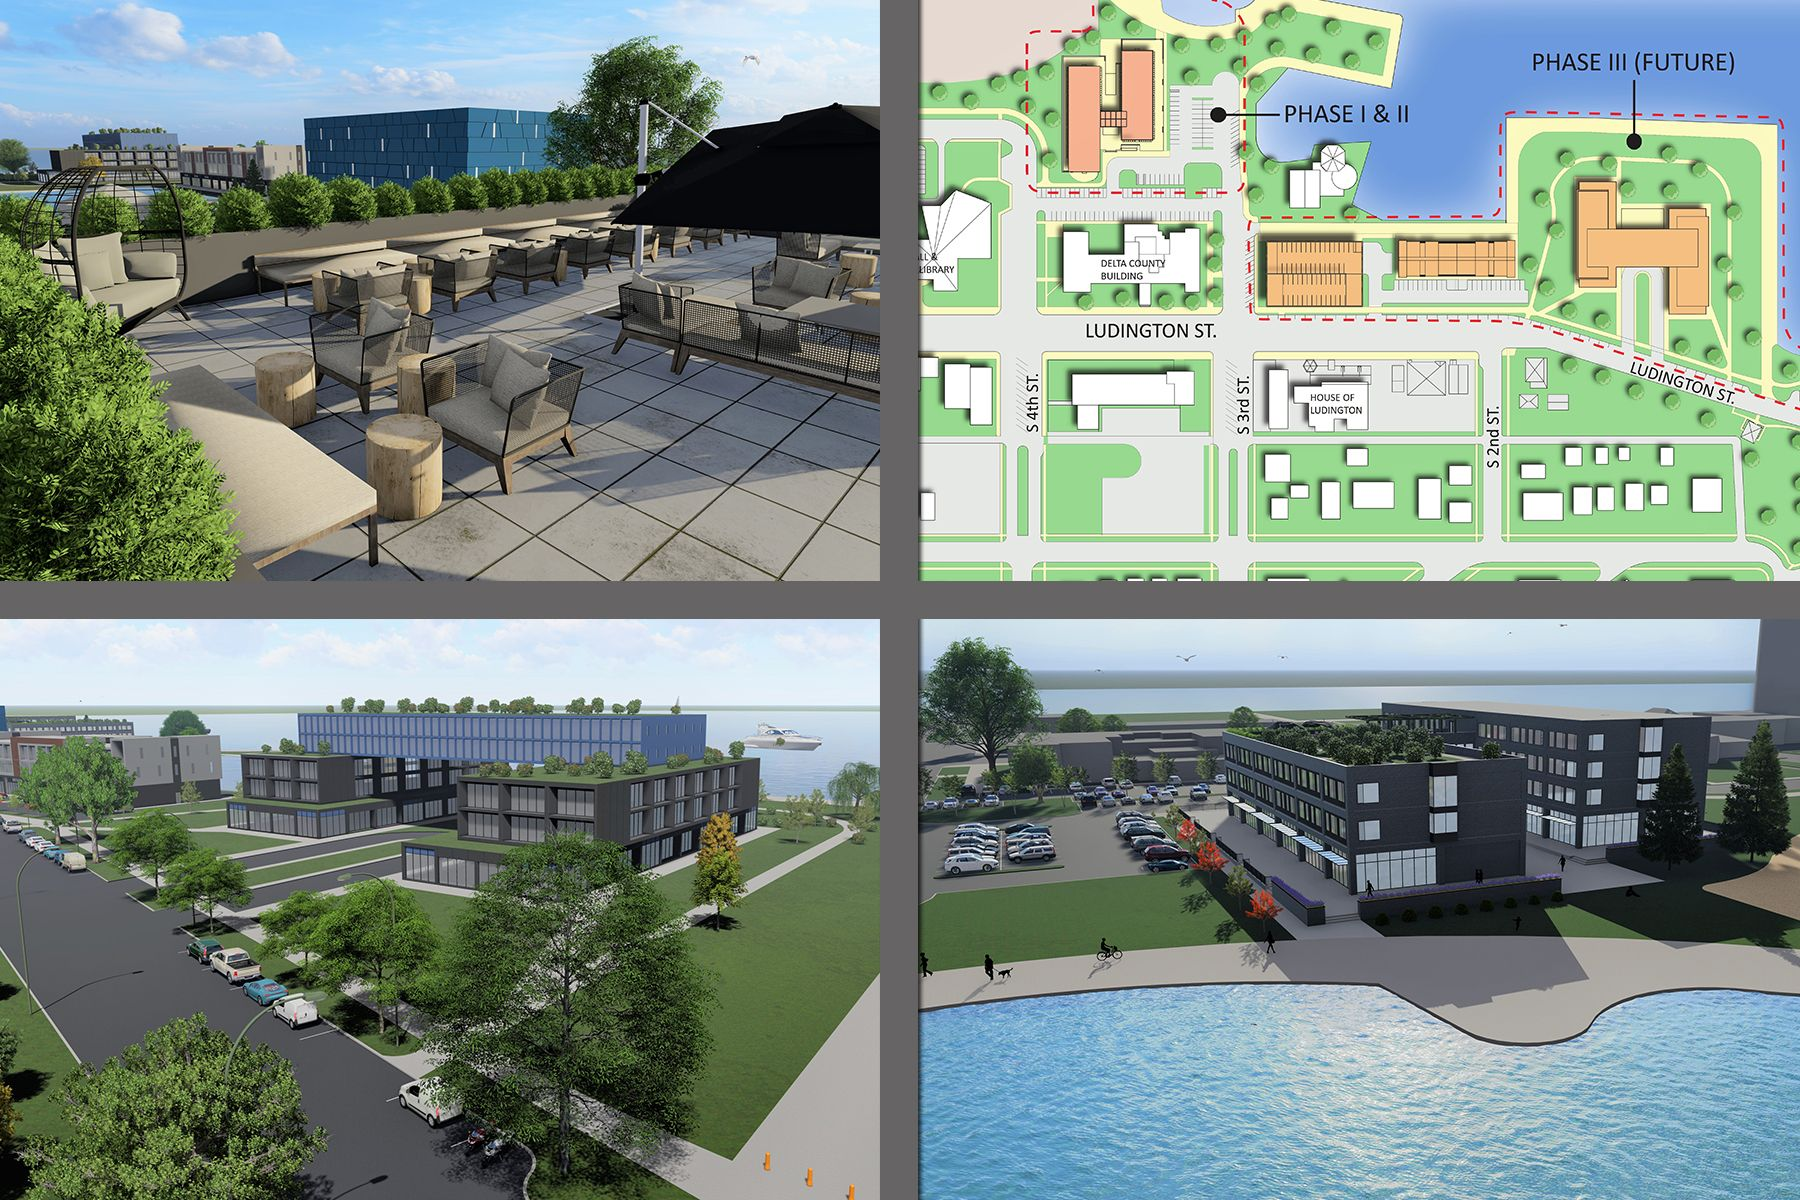 Mixed Use Development Planning